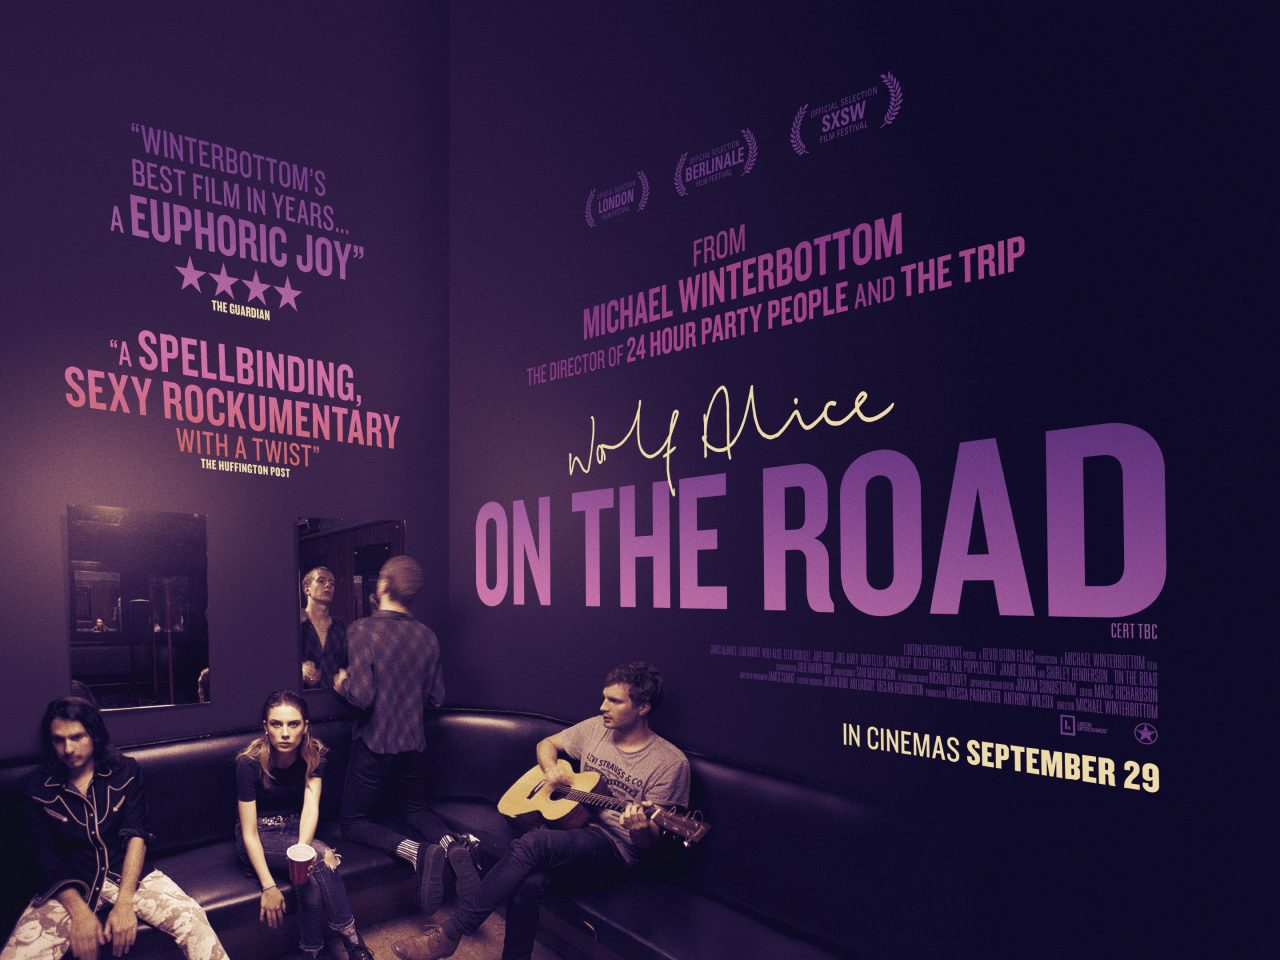 On The Road follows Wolf Alice around the country (Photo: Revolution Films)